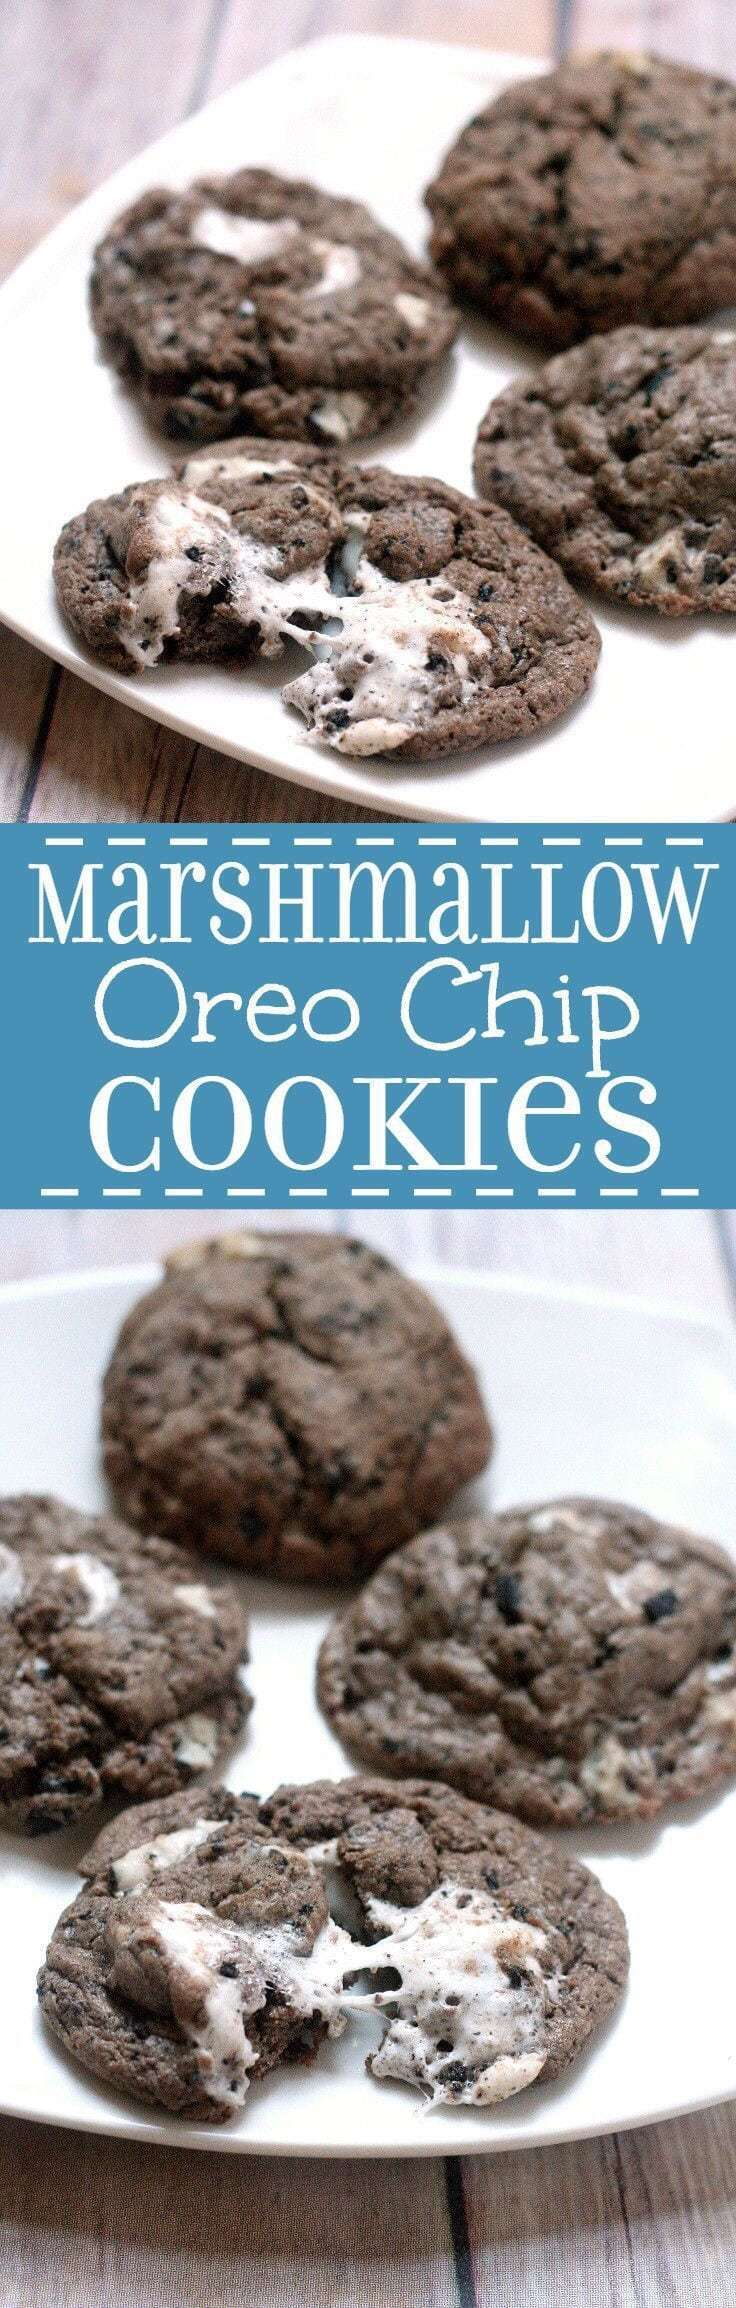 Marshmallow Oreo Chip Cookies